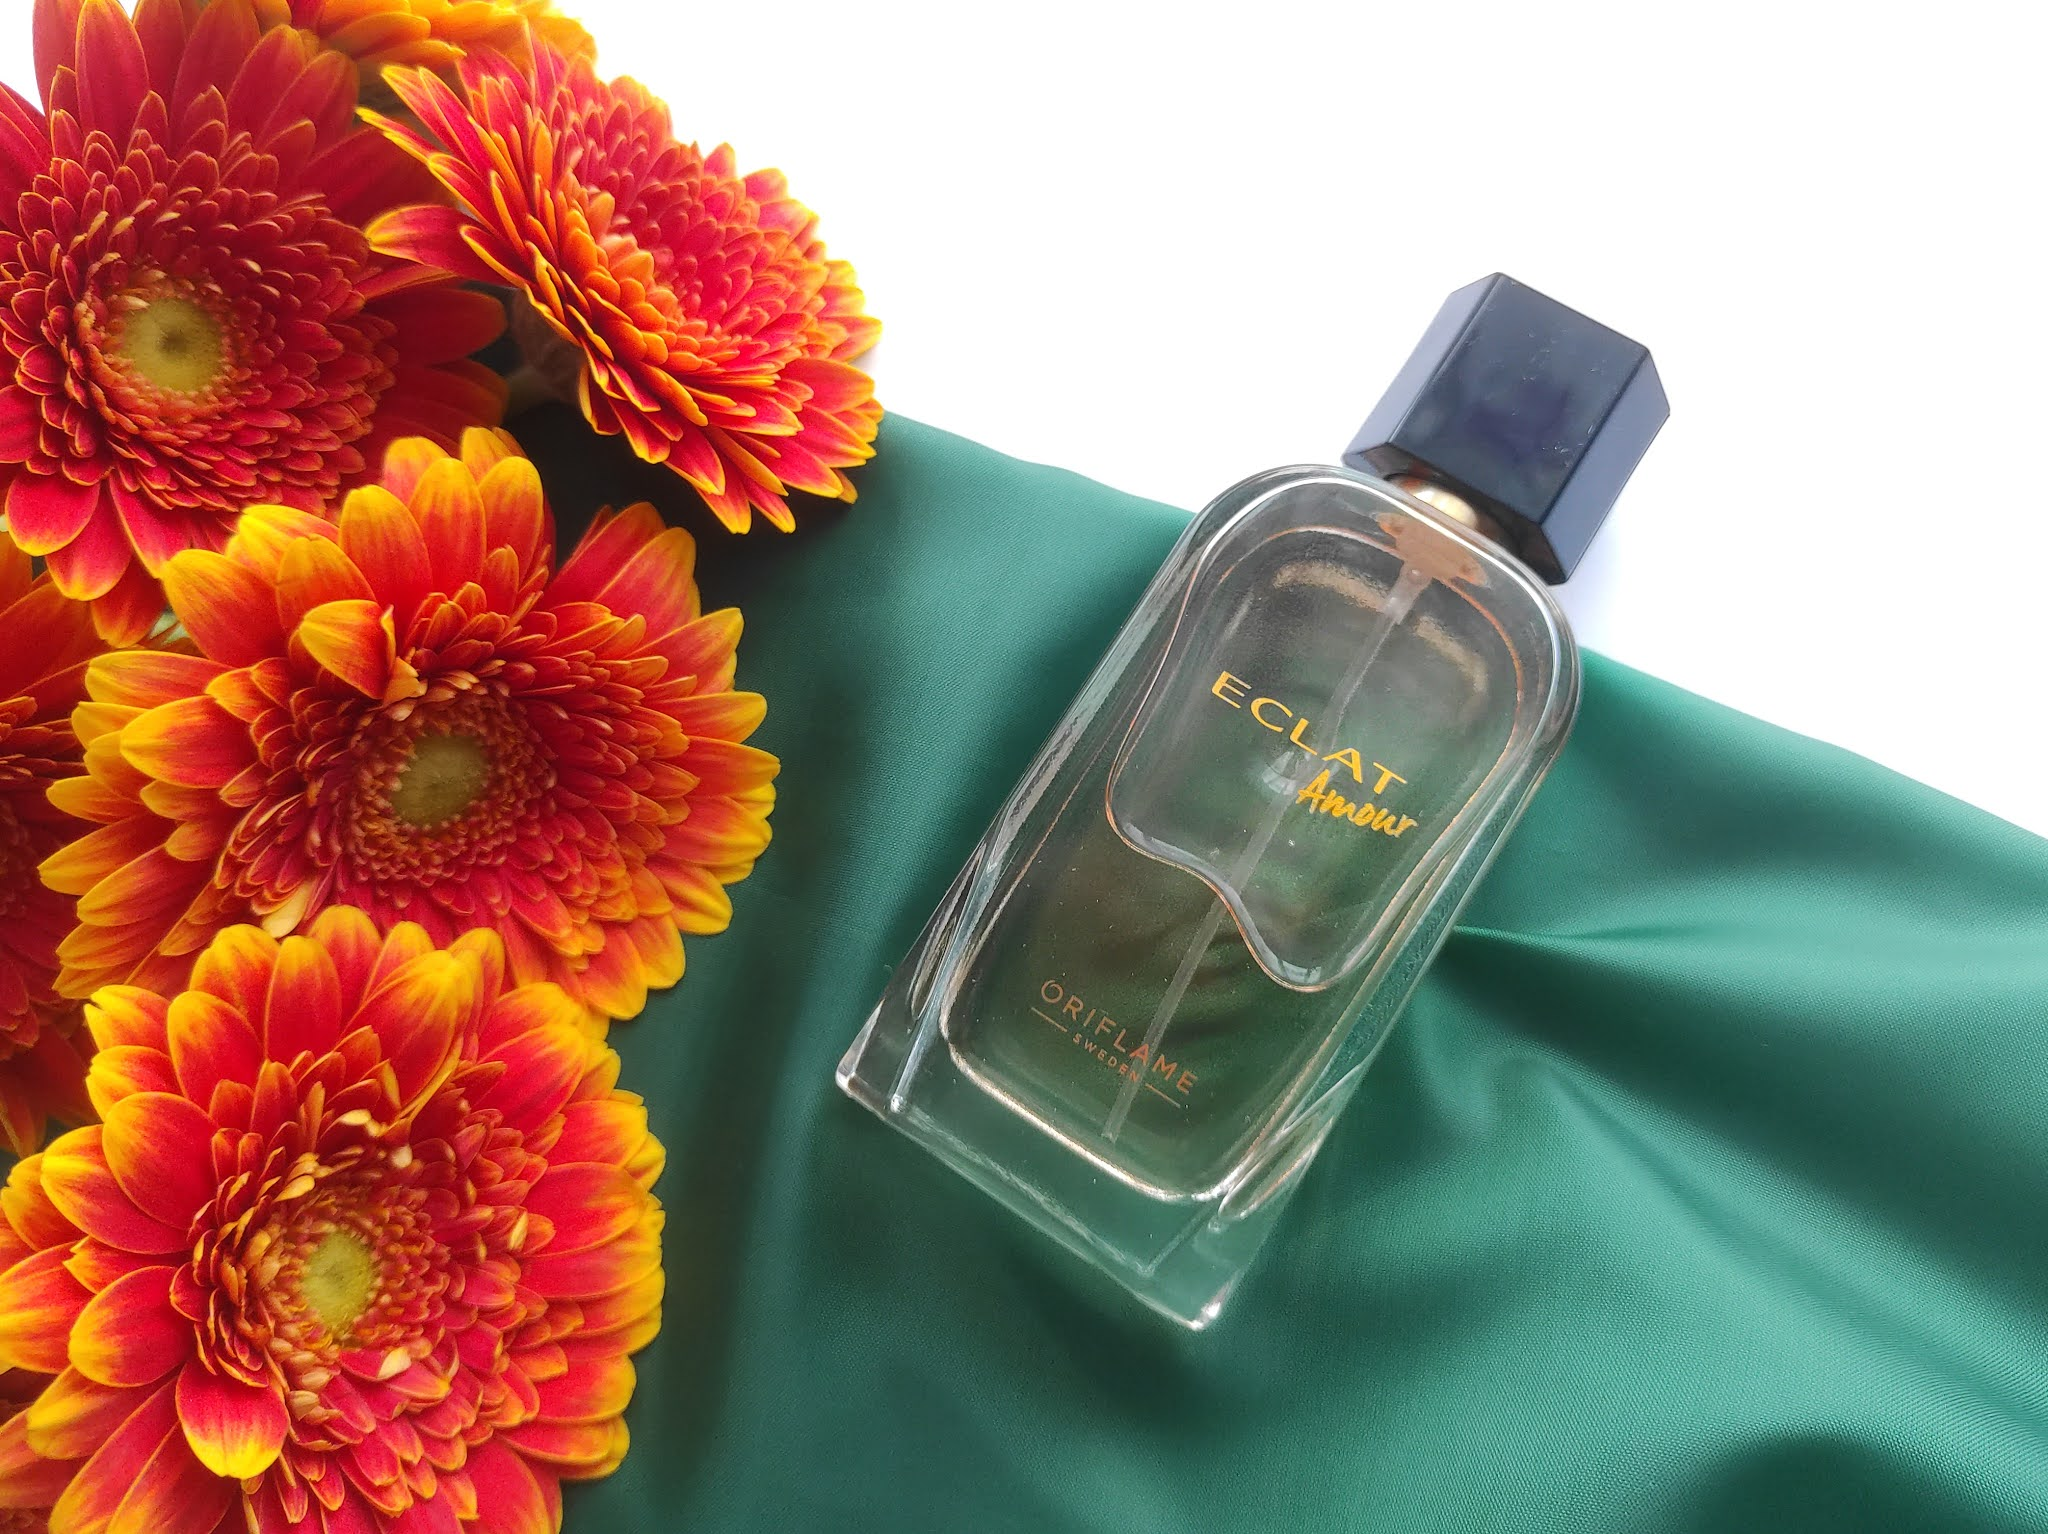 Eclat Amour Oriflame